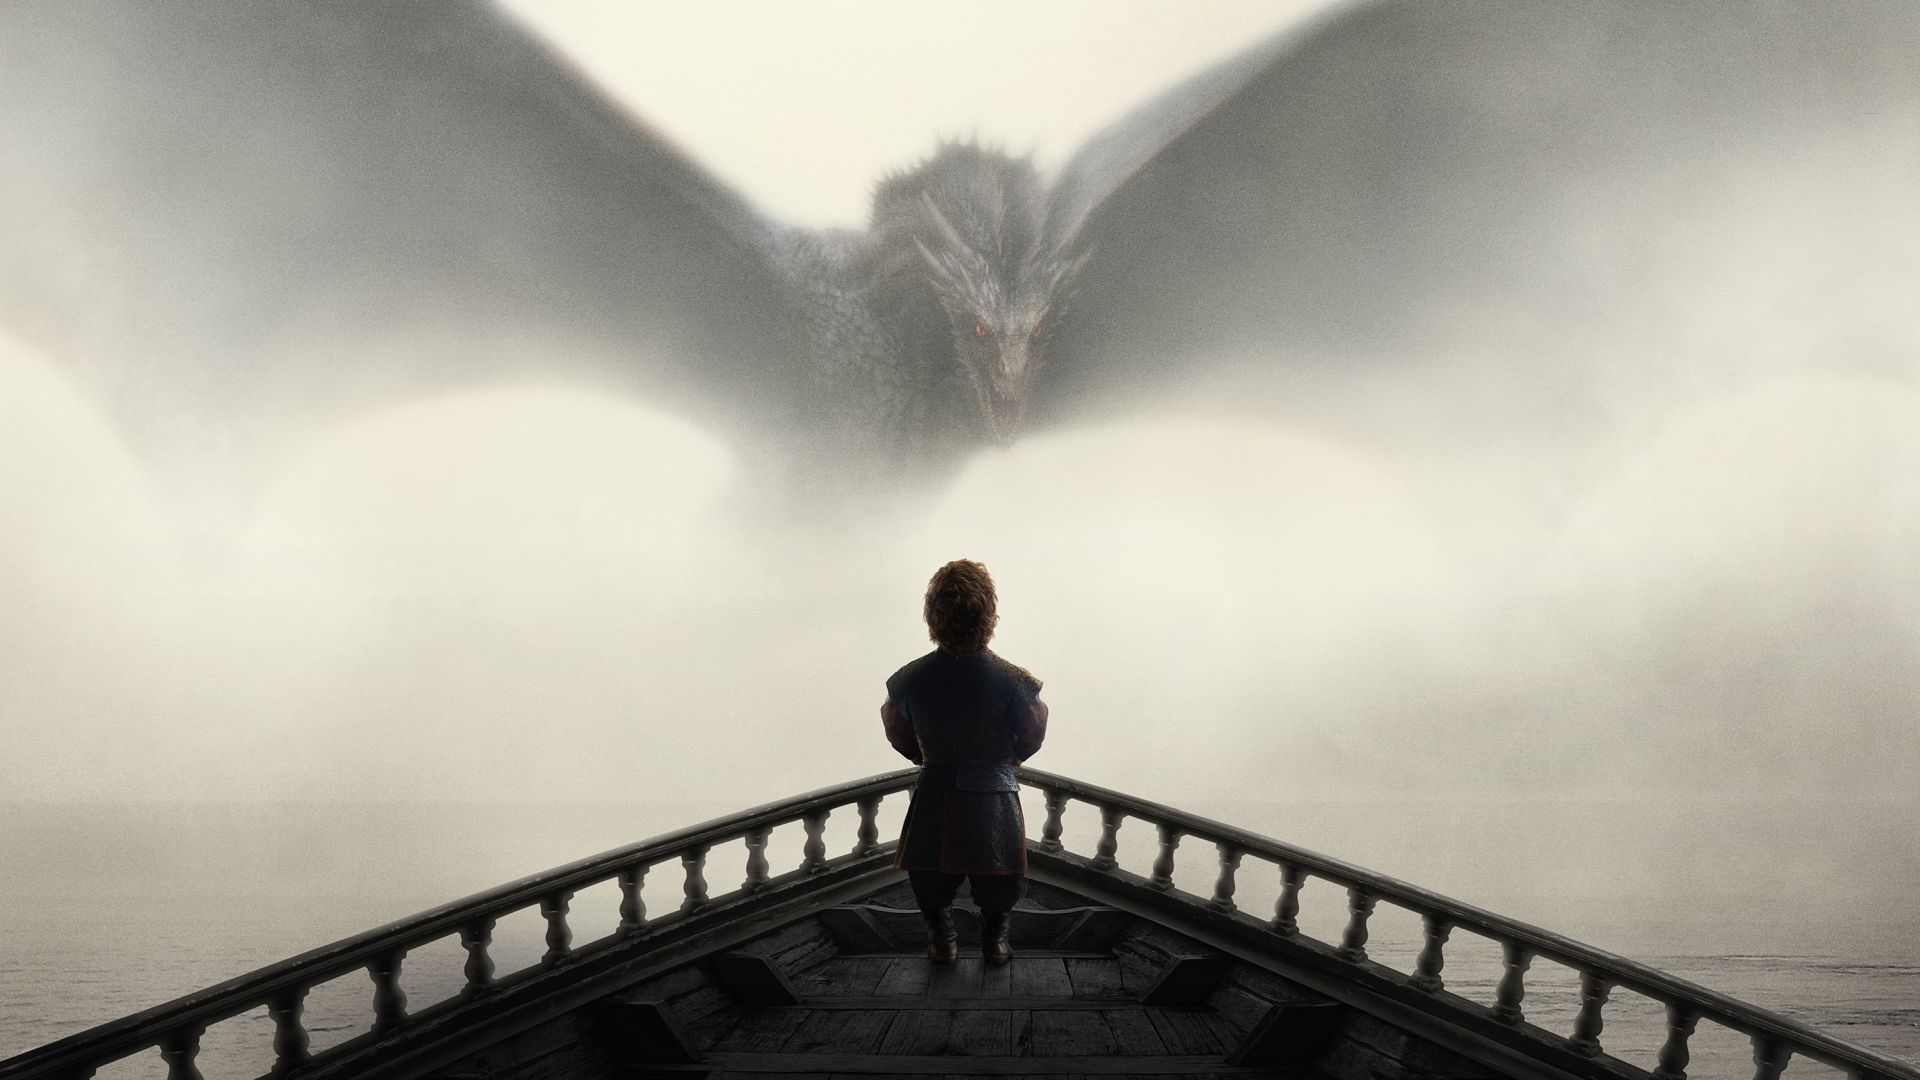 35 Game of Thrones HD Wallpapers